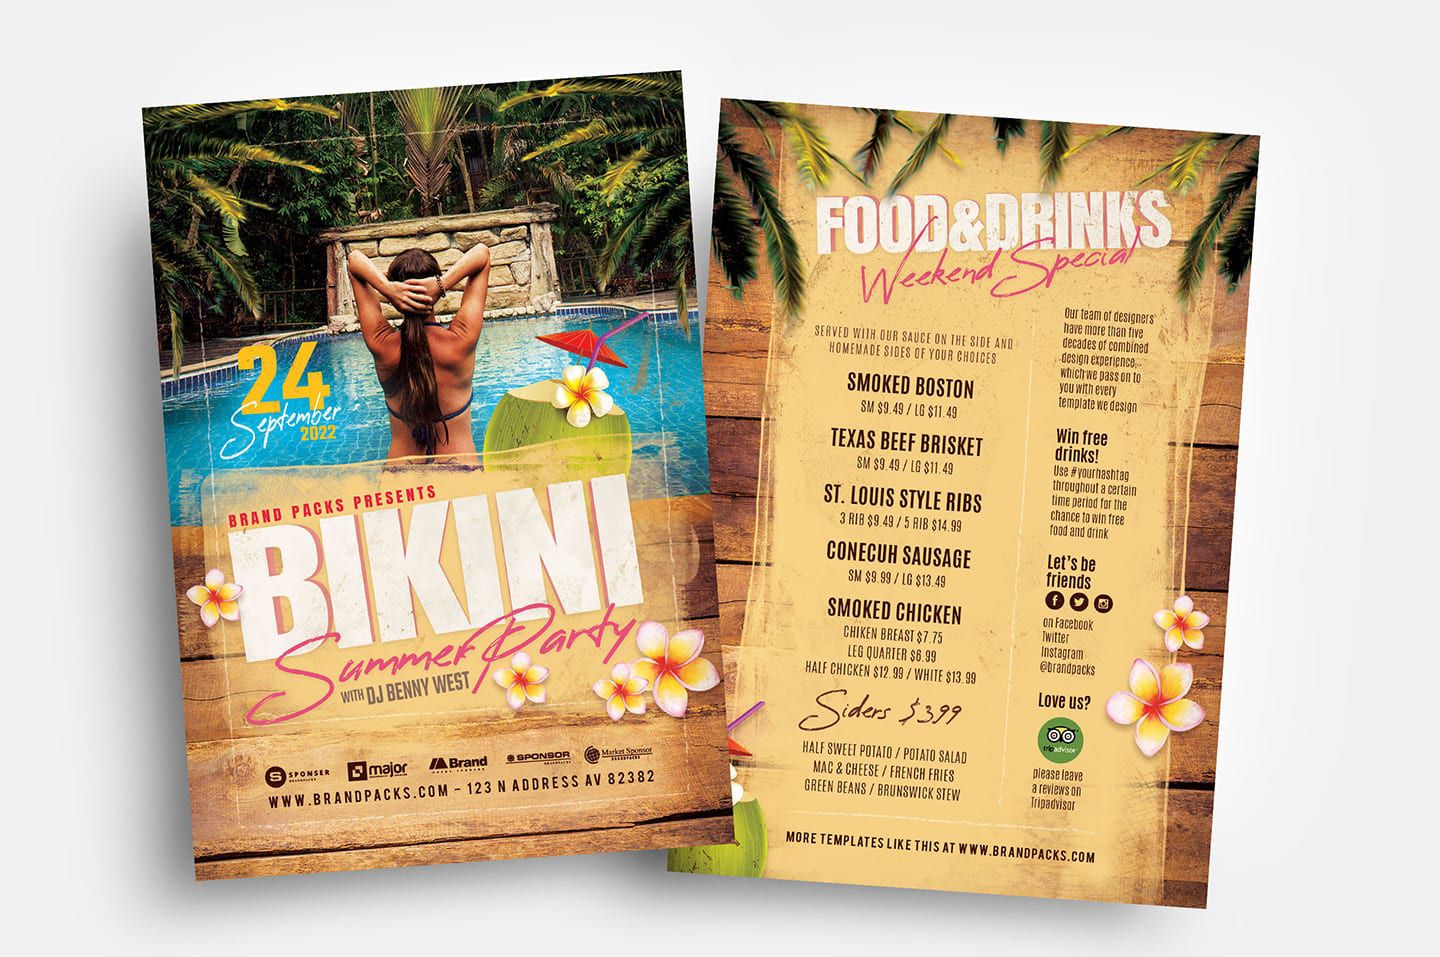 006 Incredible Free Party Flyer Template For Mac High Definition Full